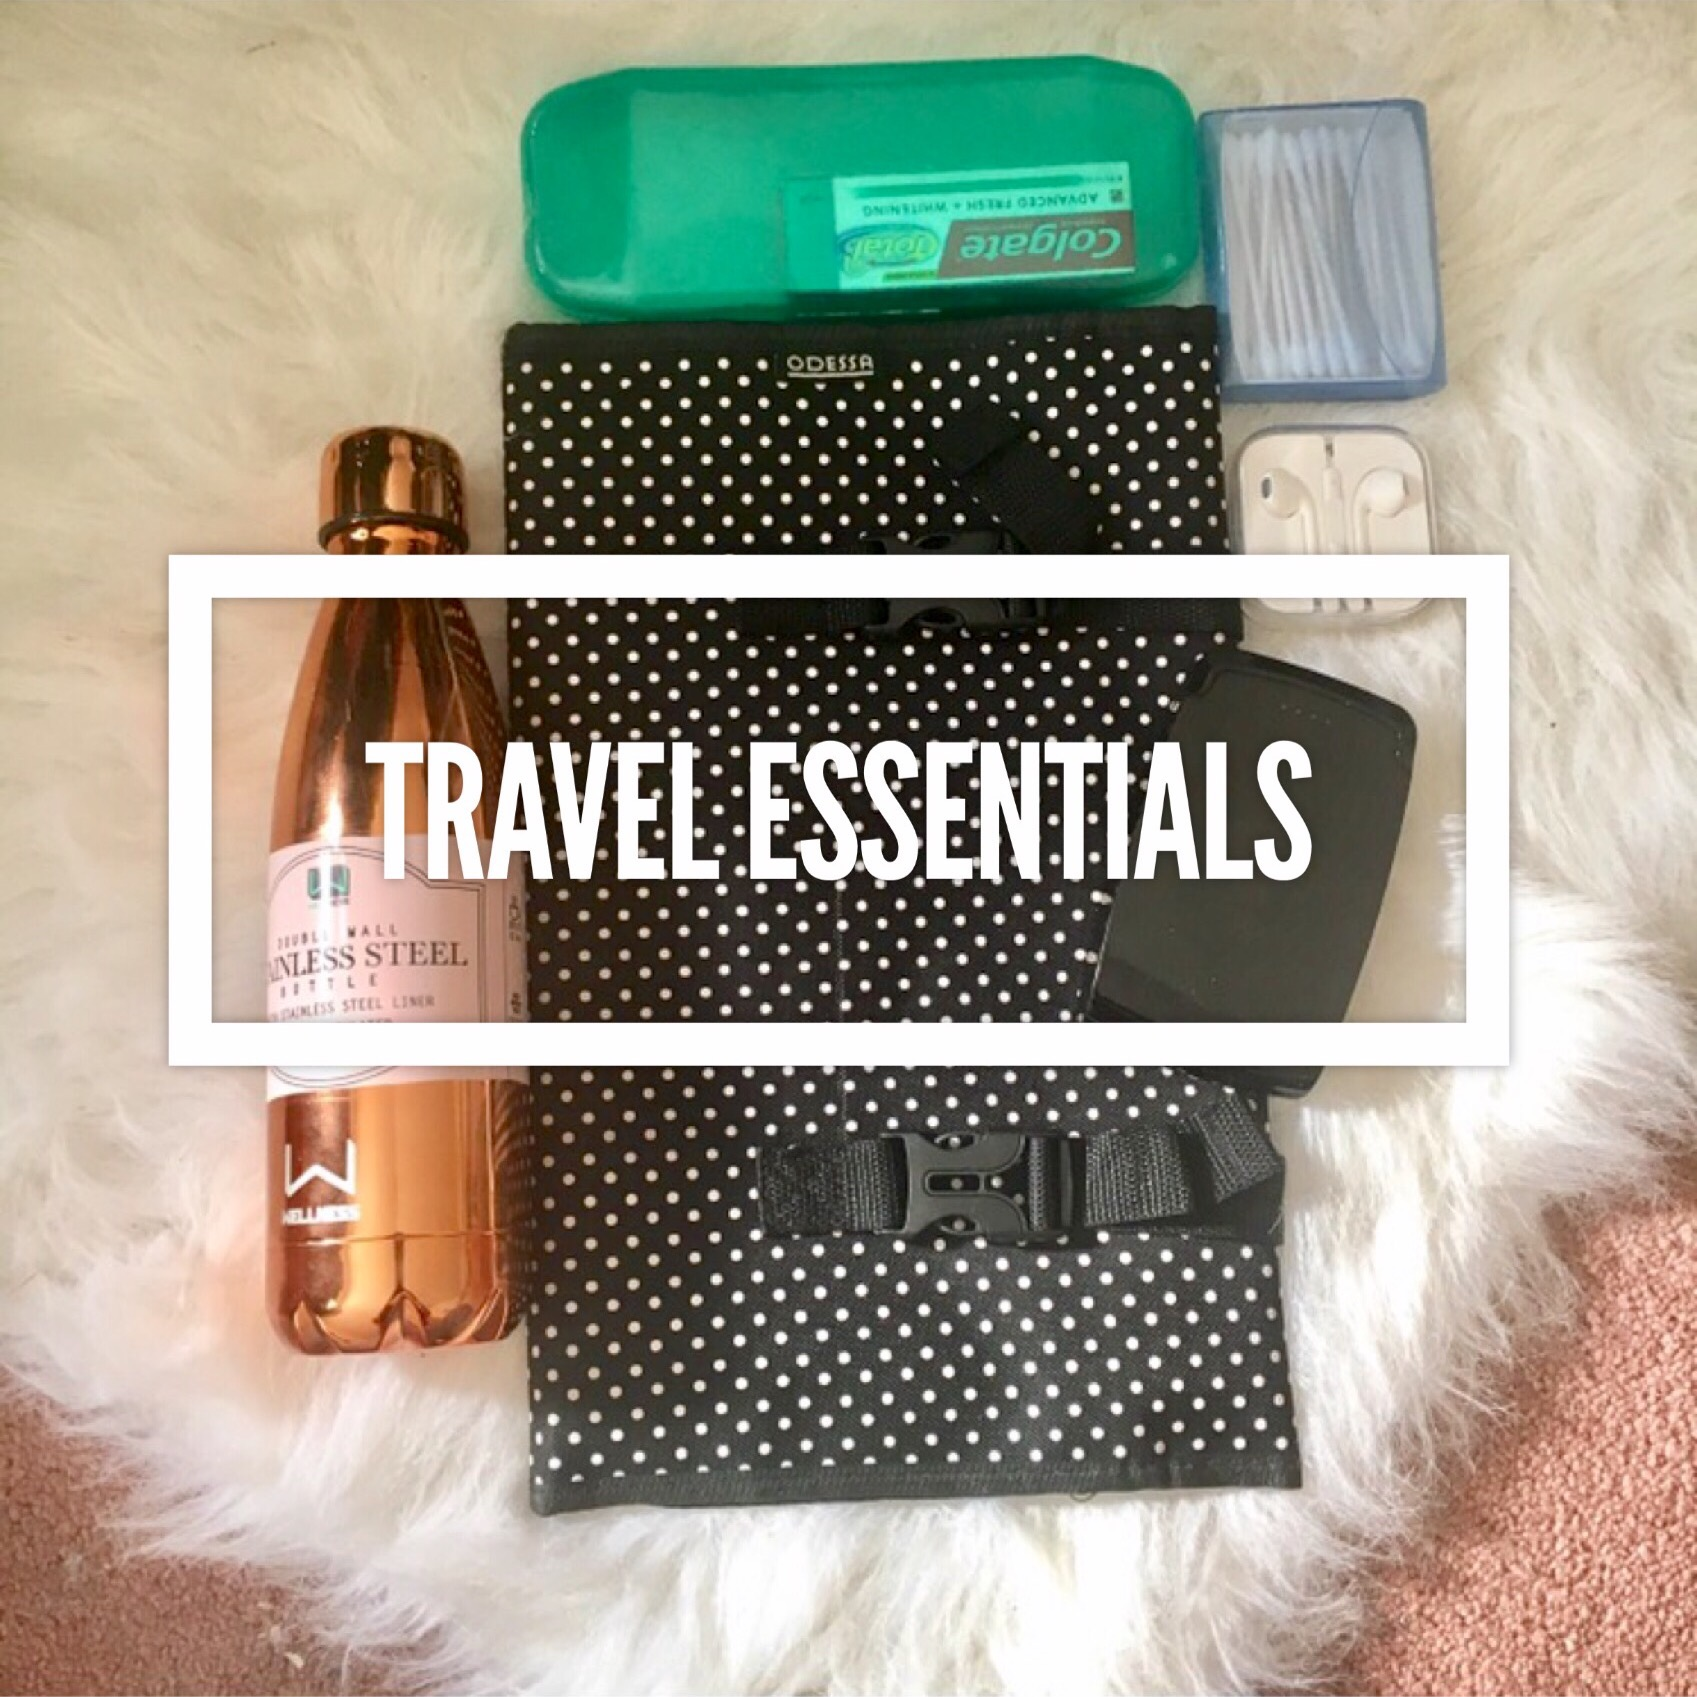 Important Tools to Have as Travel Essentials